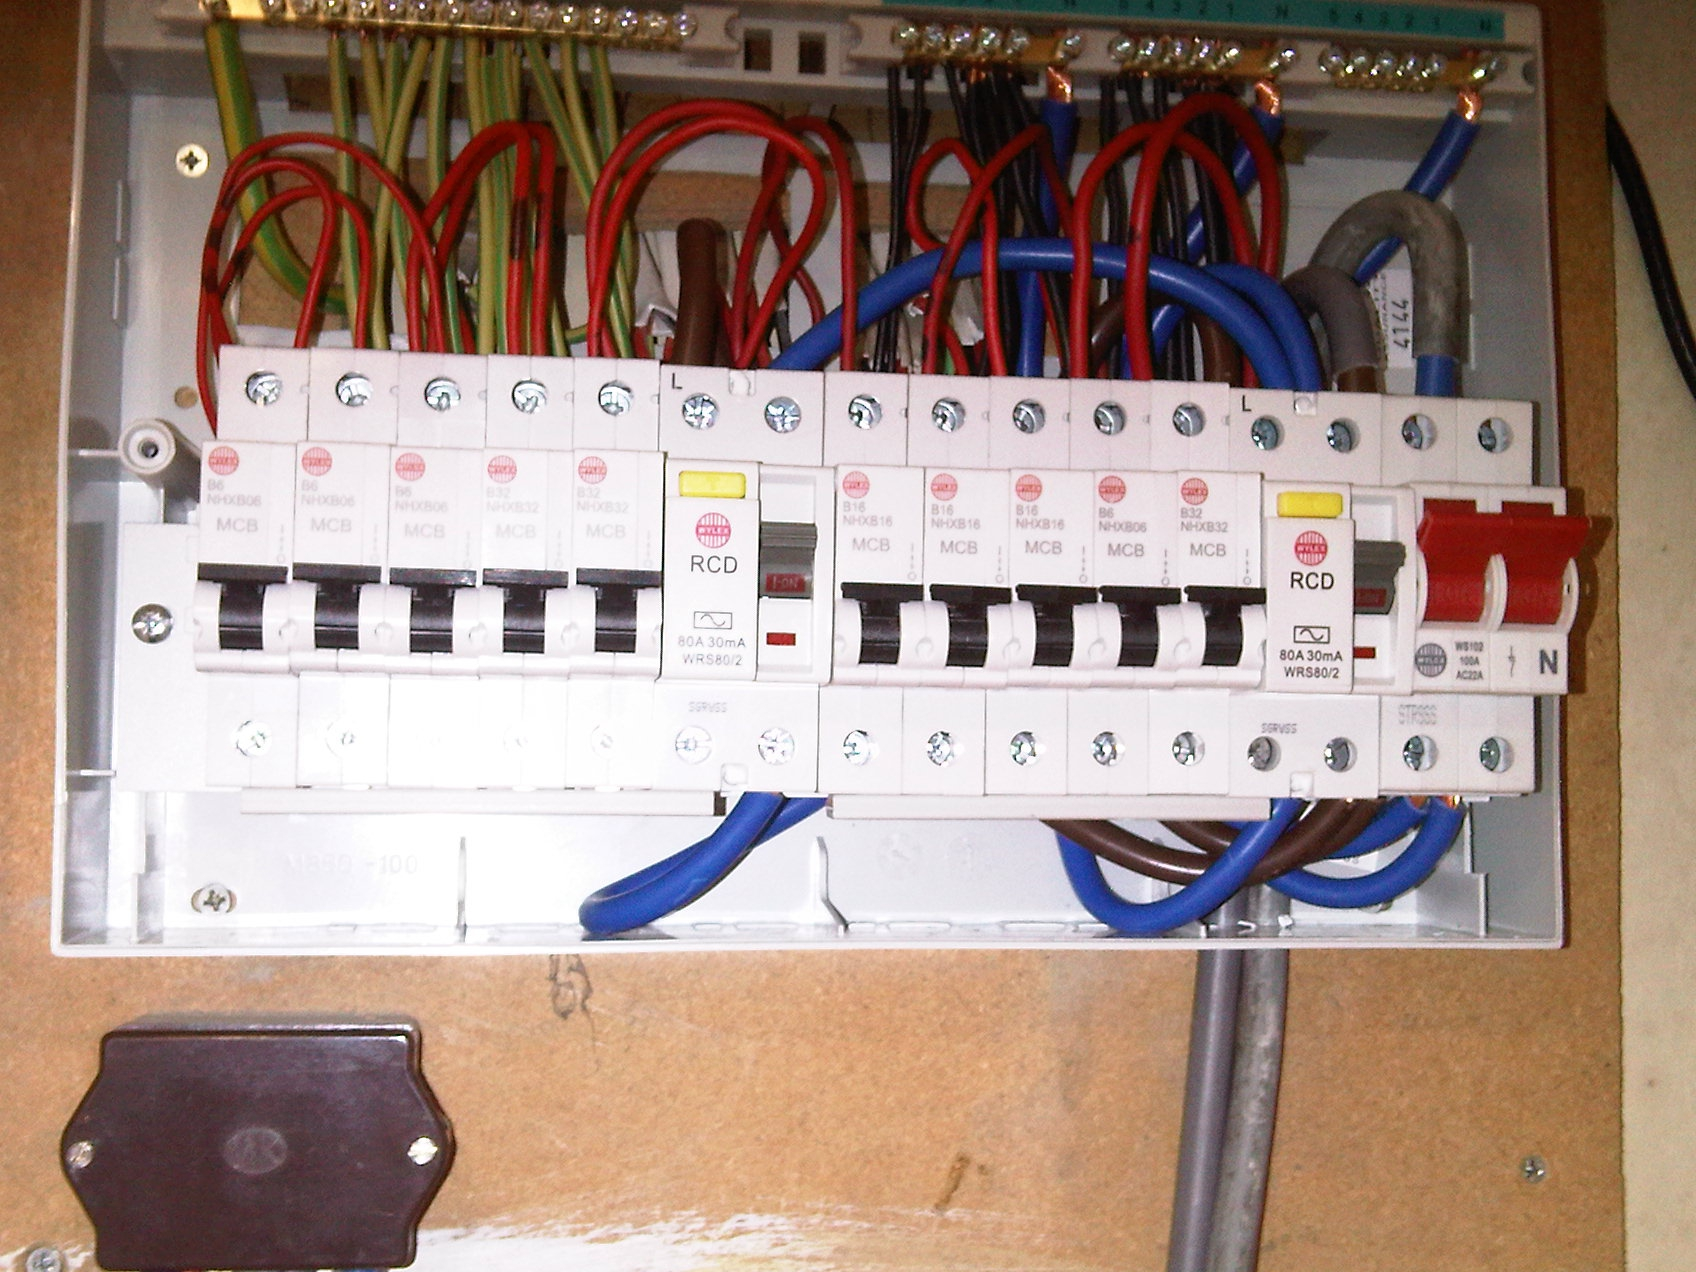 Fusebox 4 fuse switch box 120v electrical switch wiring diagrams \u2022 wiring fuse box in house at fashall.co